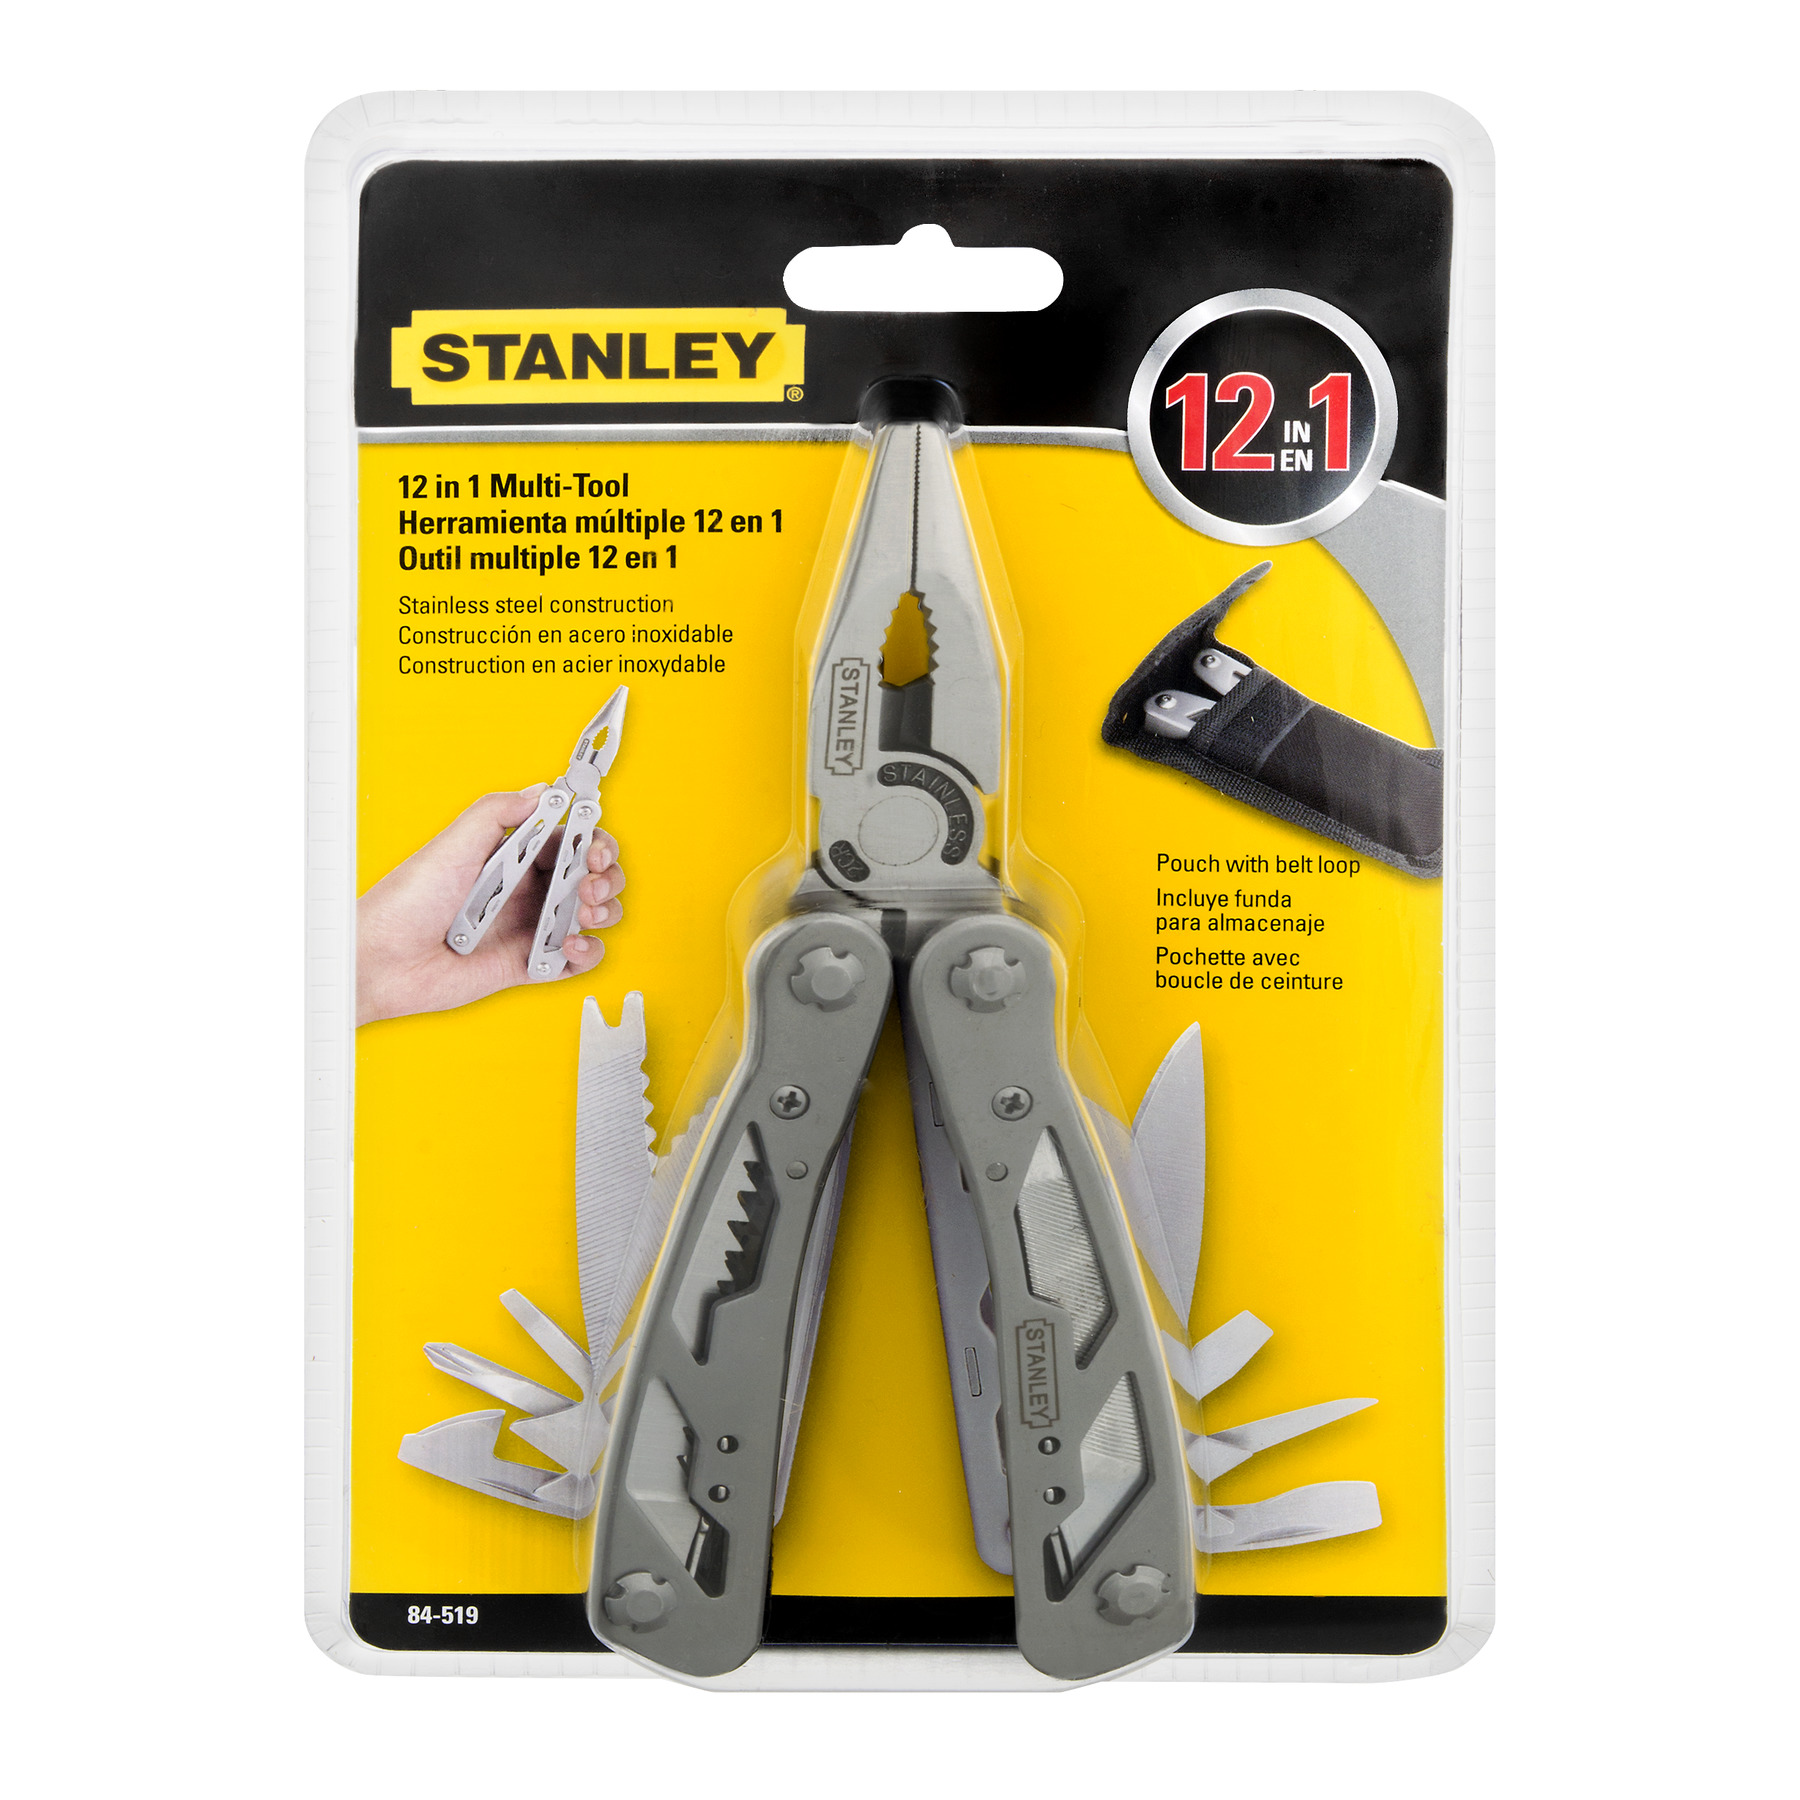 Stanley 12 In 1 Multi - Tool, 1.0 CT